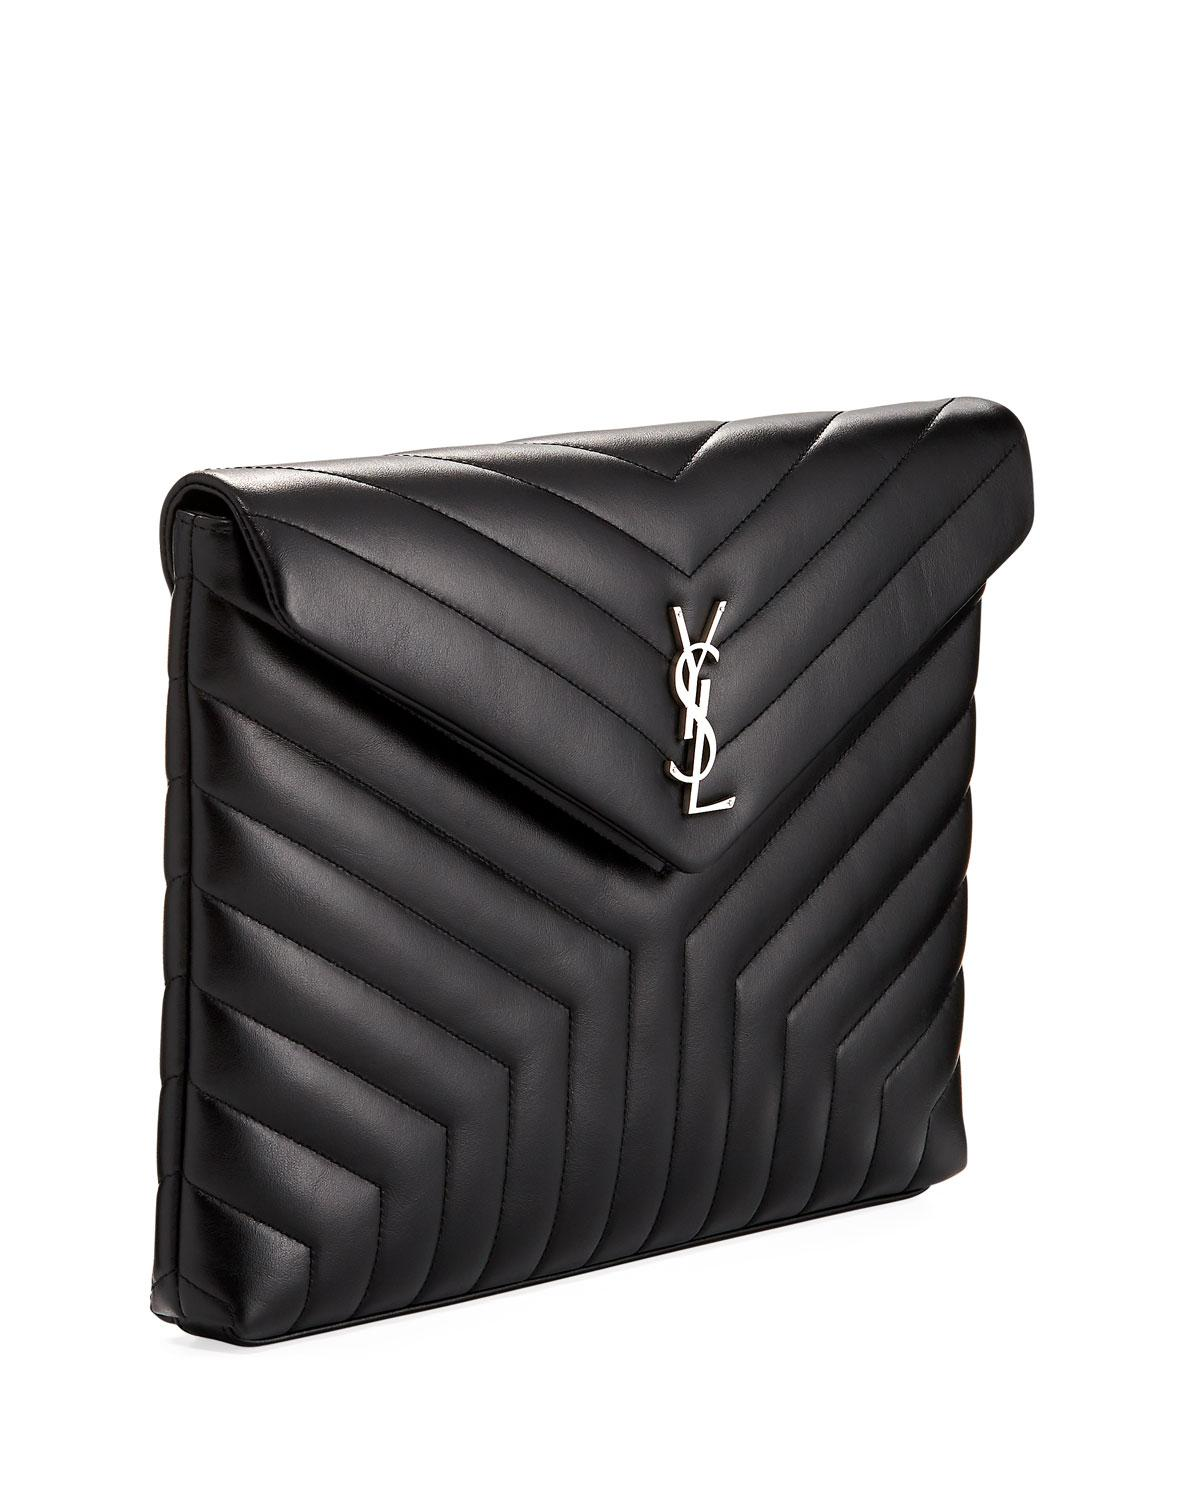 Lyst - Saint Laurent Monogram Loulou Quilted Document Holder in Black 530b2742f9f39